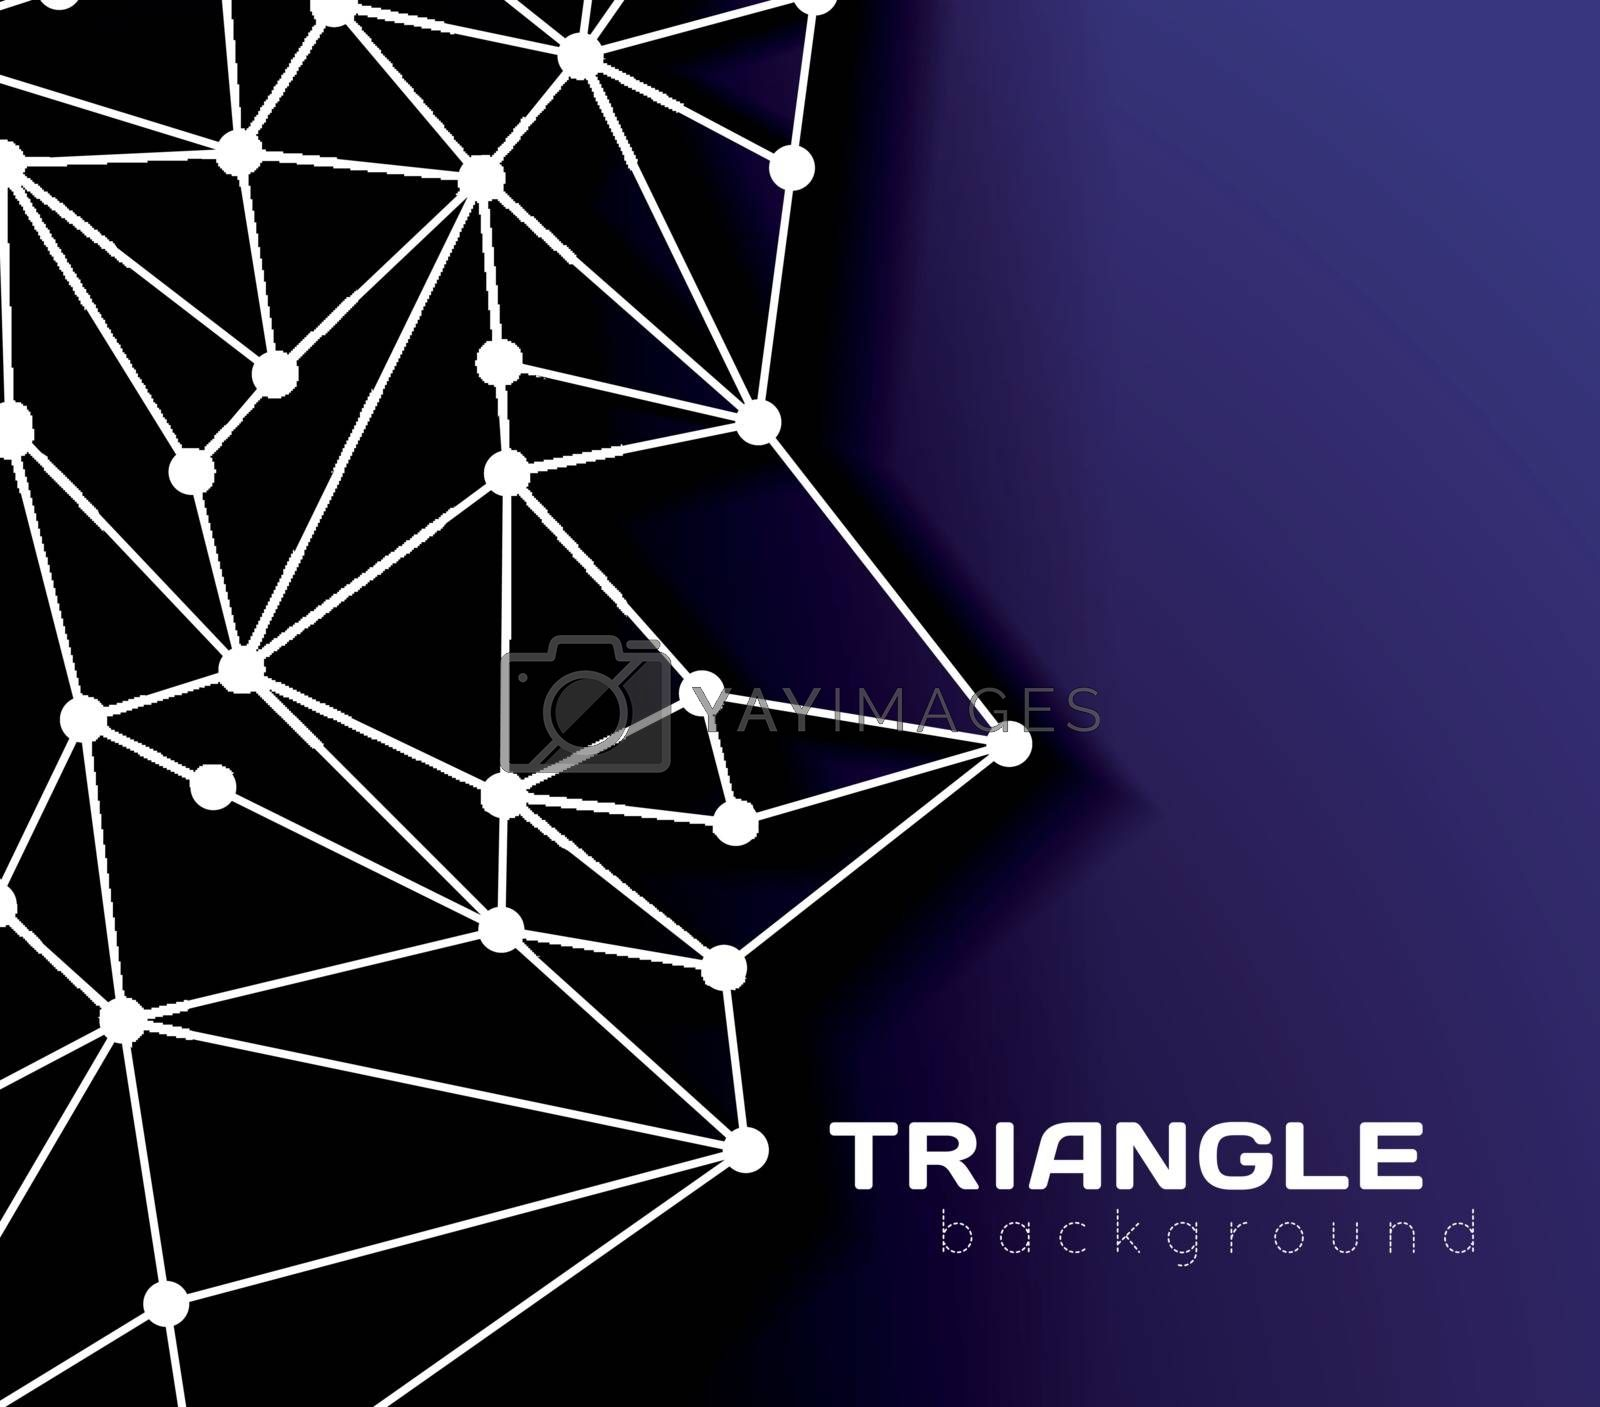 Abstract network connection background by sermax55